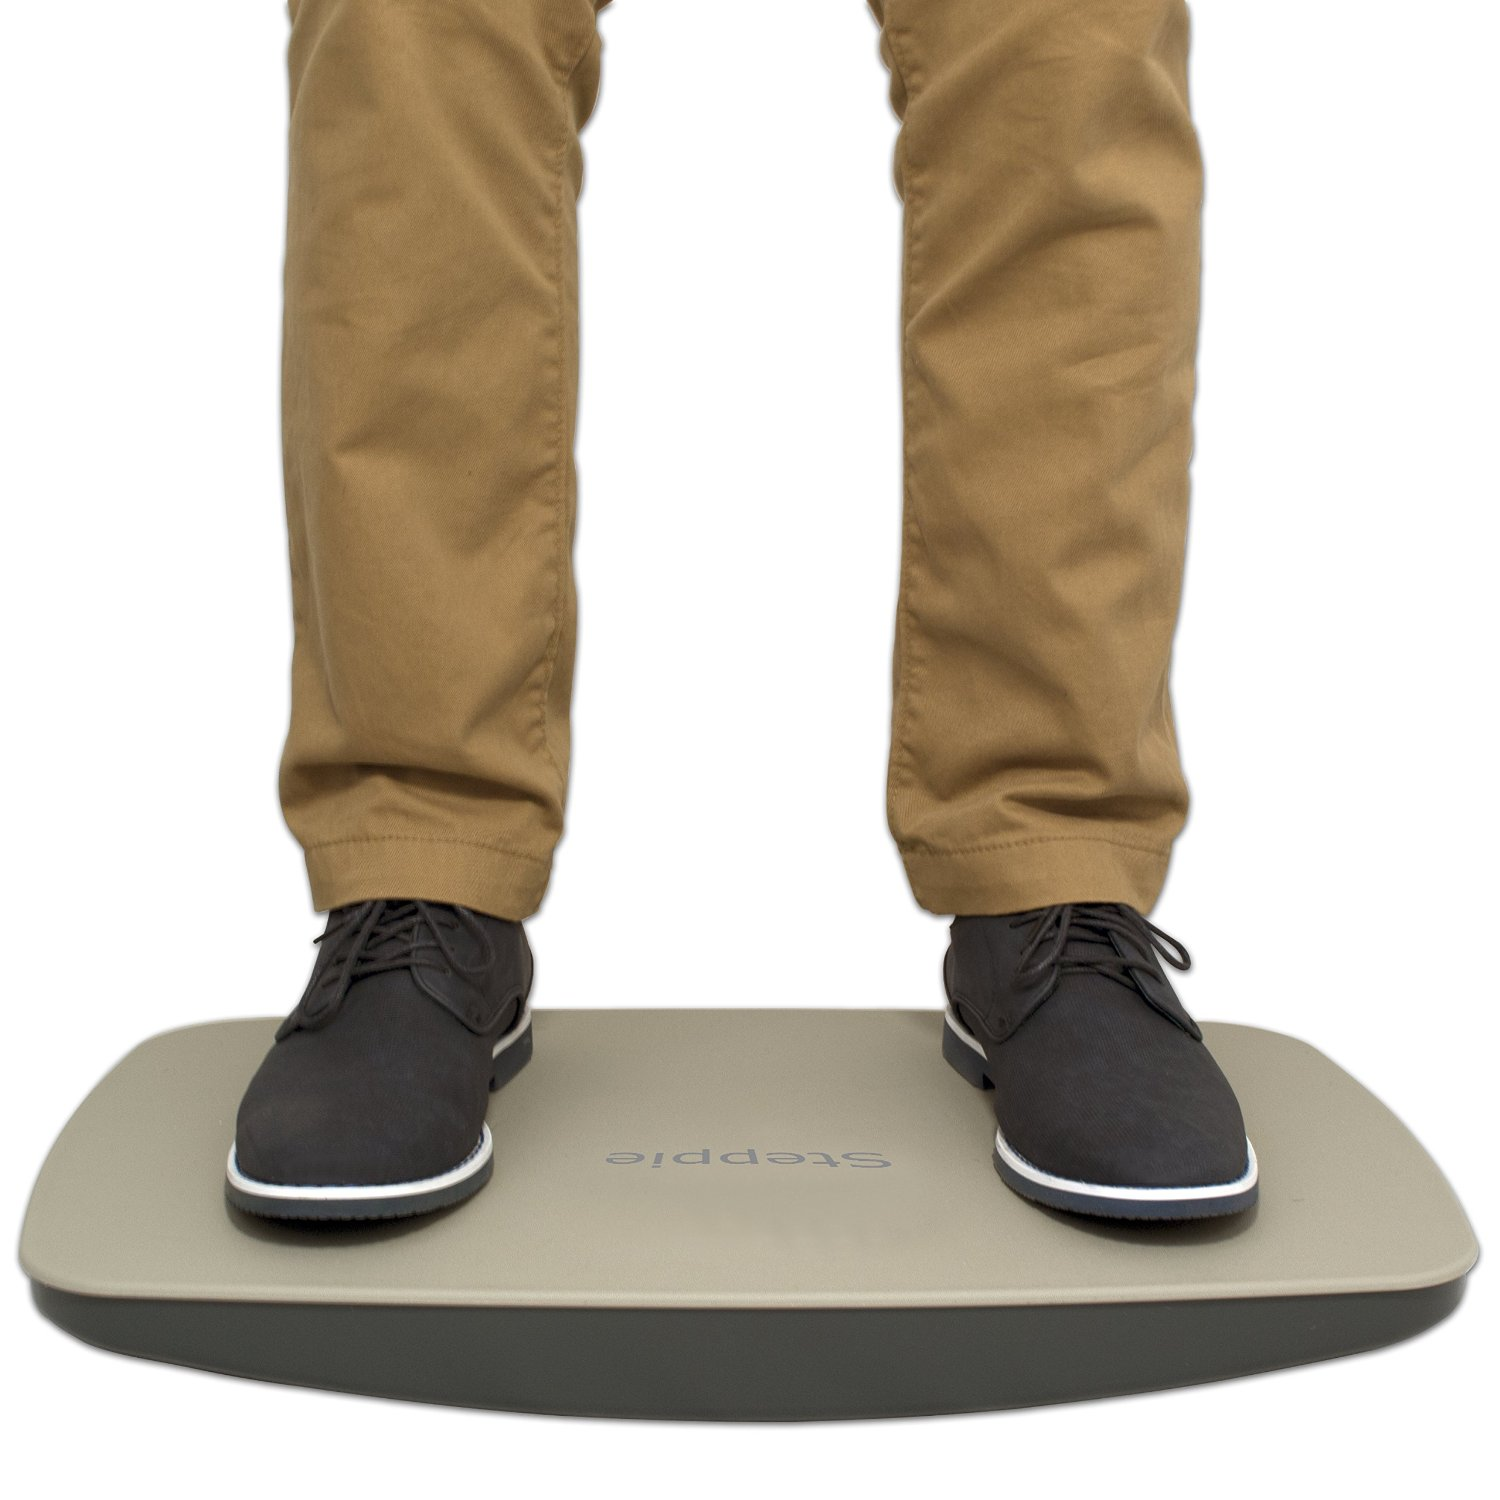 Office step board for standing desks